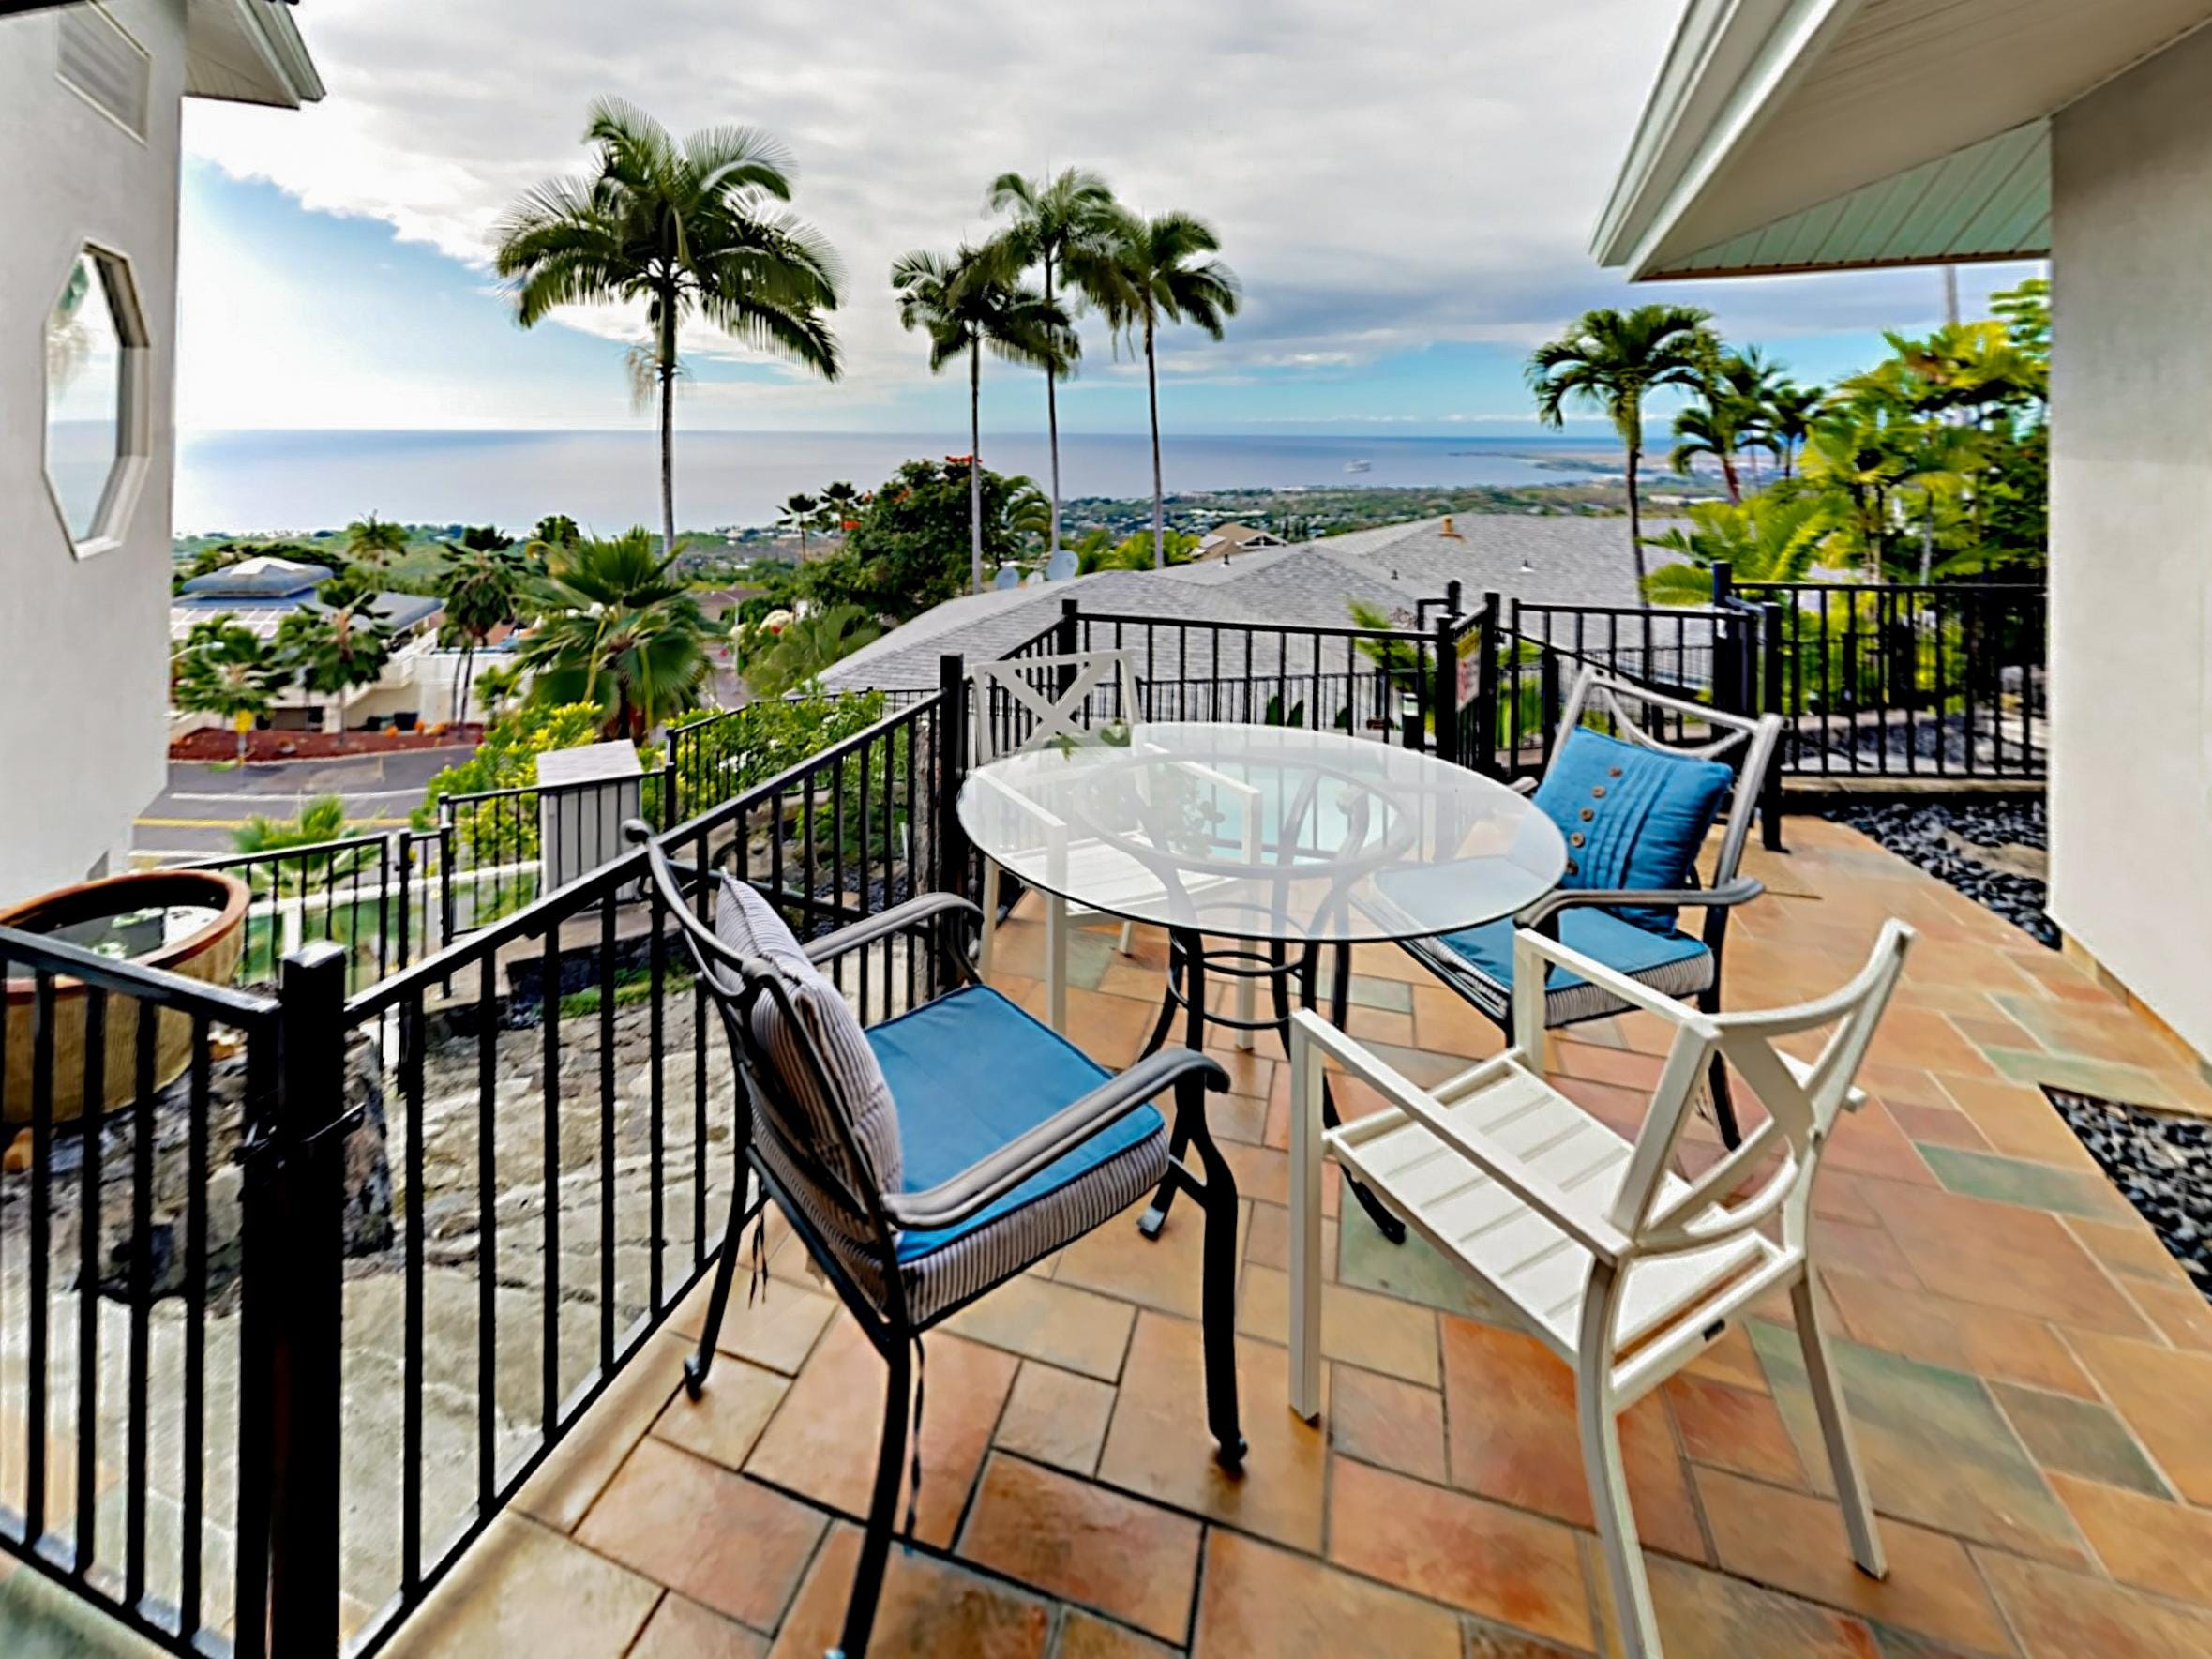 Sip a cold beverage and take in ocean views while relaxing on the balcony.